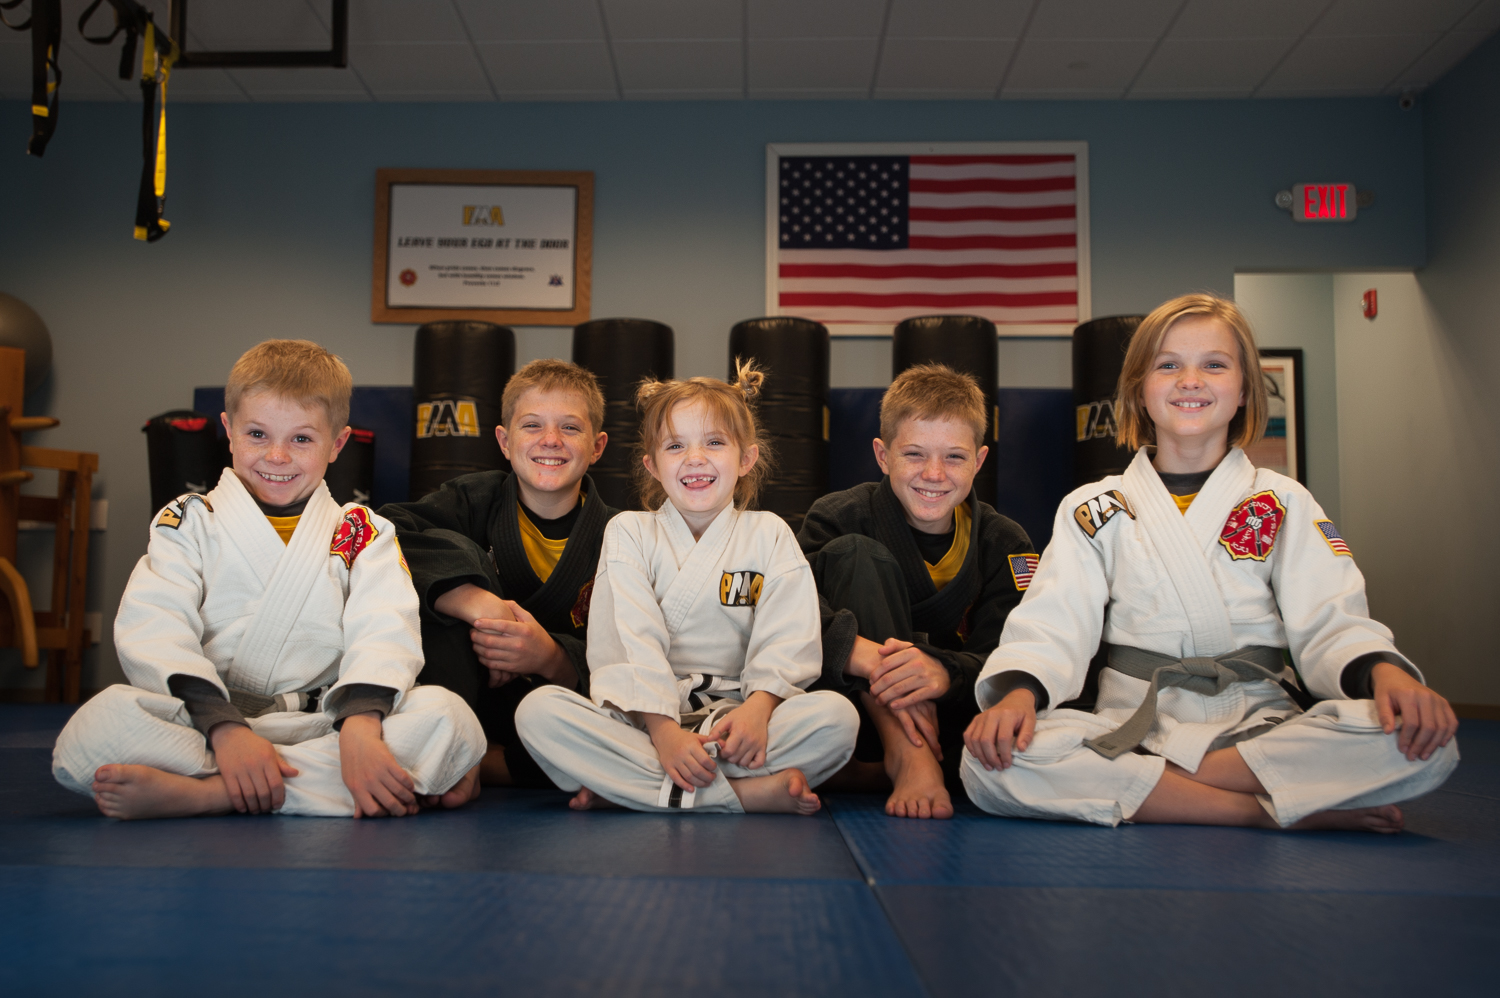 Kristie's 5 children all train martial arts too! Photo credit to Julio Culiat.